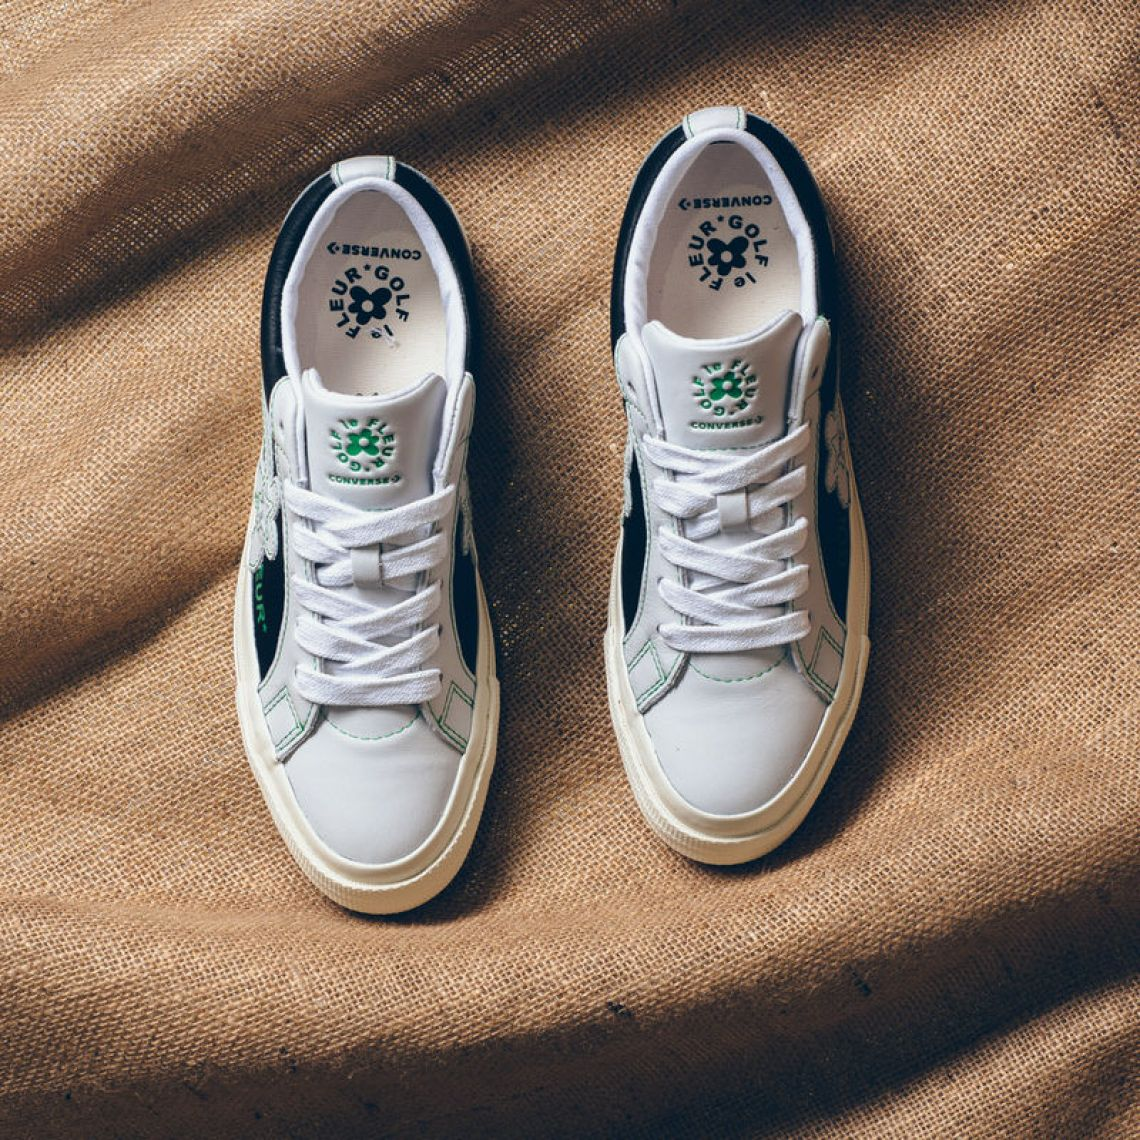 378e68d8c64 Another Look at the Converse Golf Le Fleur